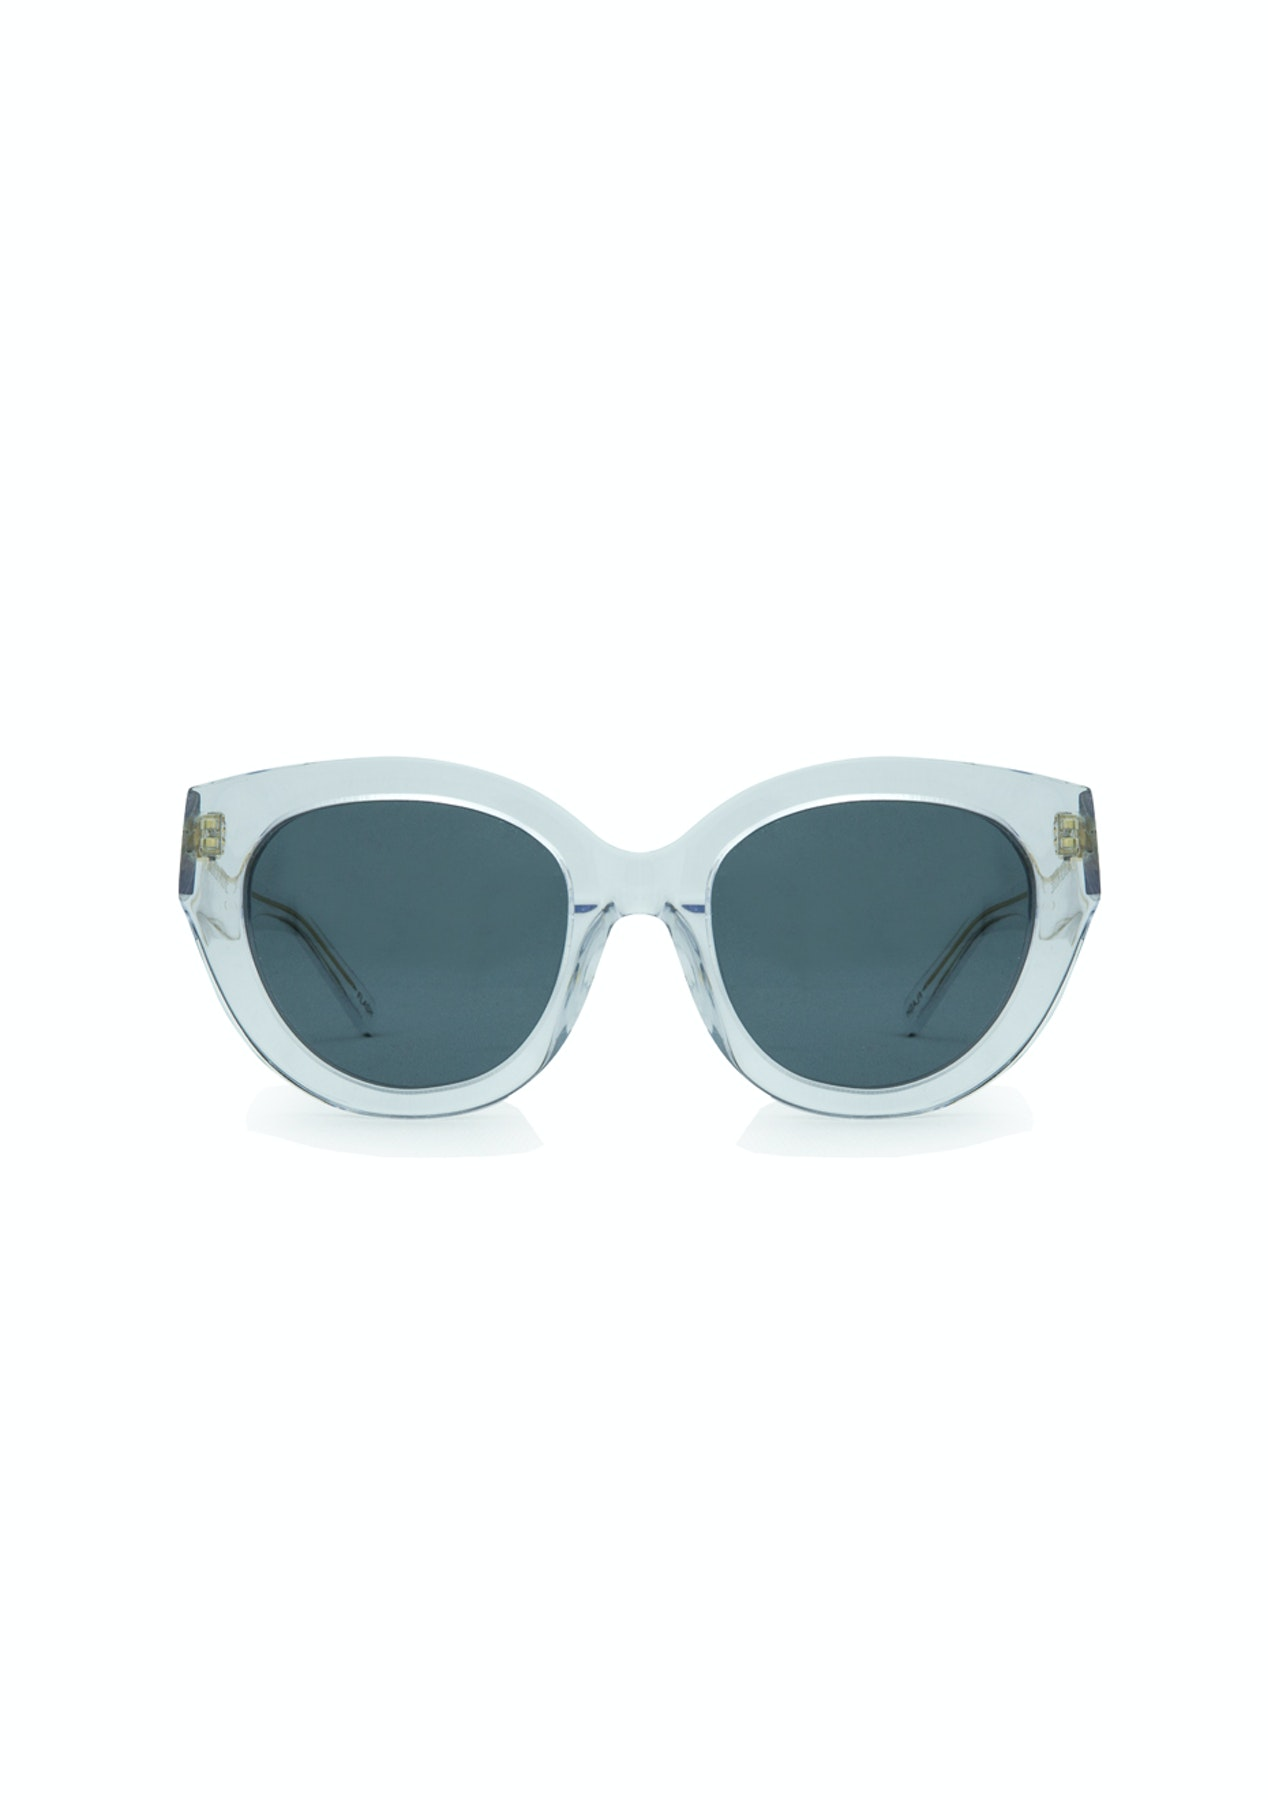 686e23b9b9b6a Andrea Moore - Flash Bright - Clear Clear - Boxing Day Eyewear   Accessory  Clearance - Onceit